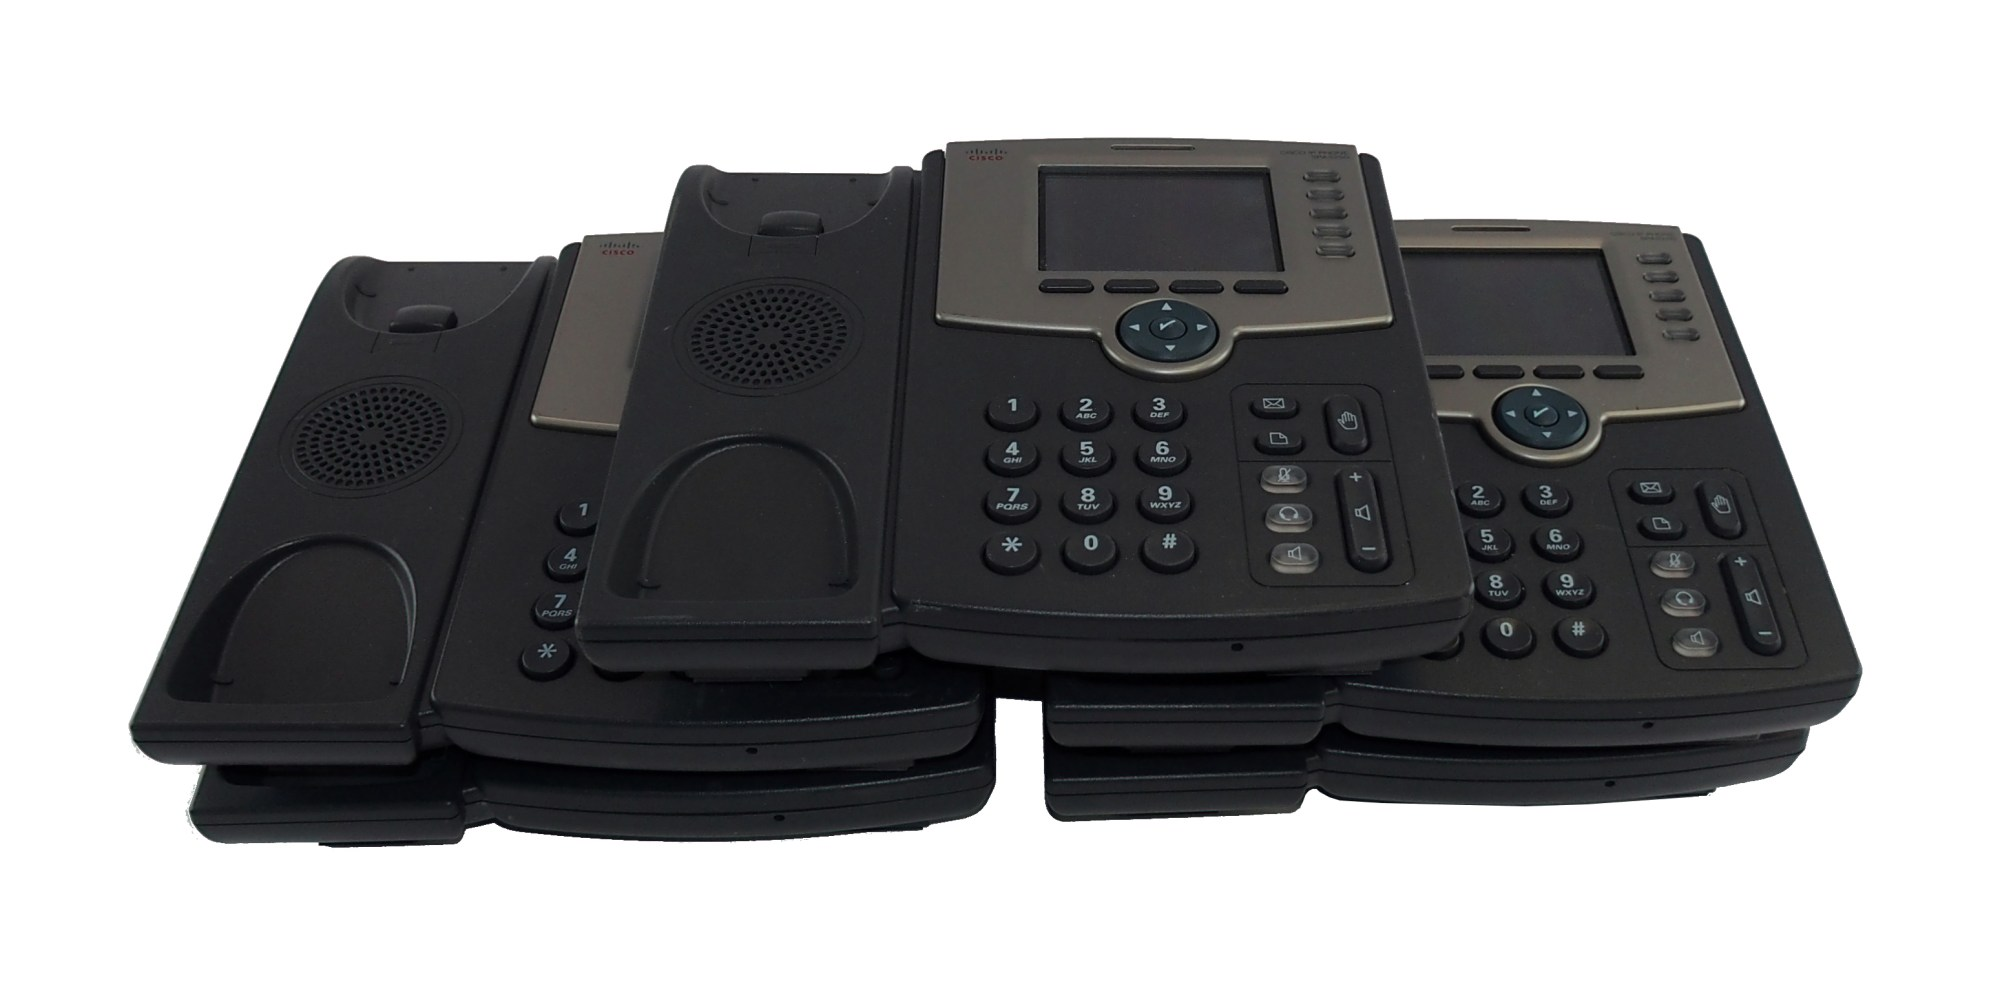 hight resolution of five 5 x cisco spa525g2 5 line color display business ip phone